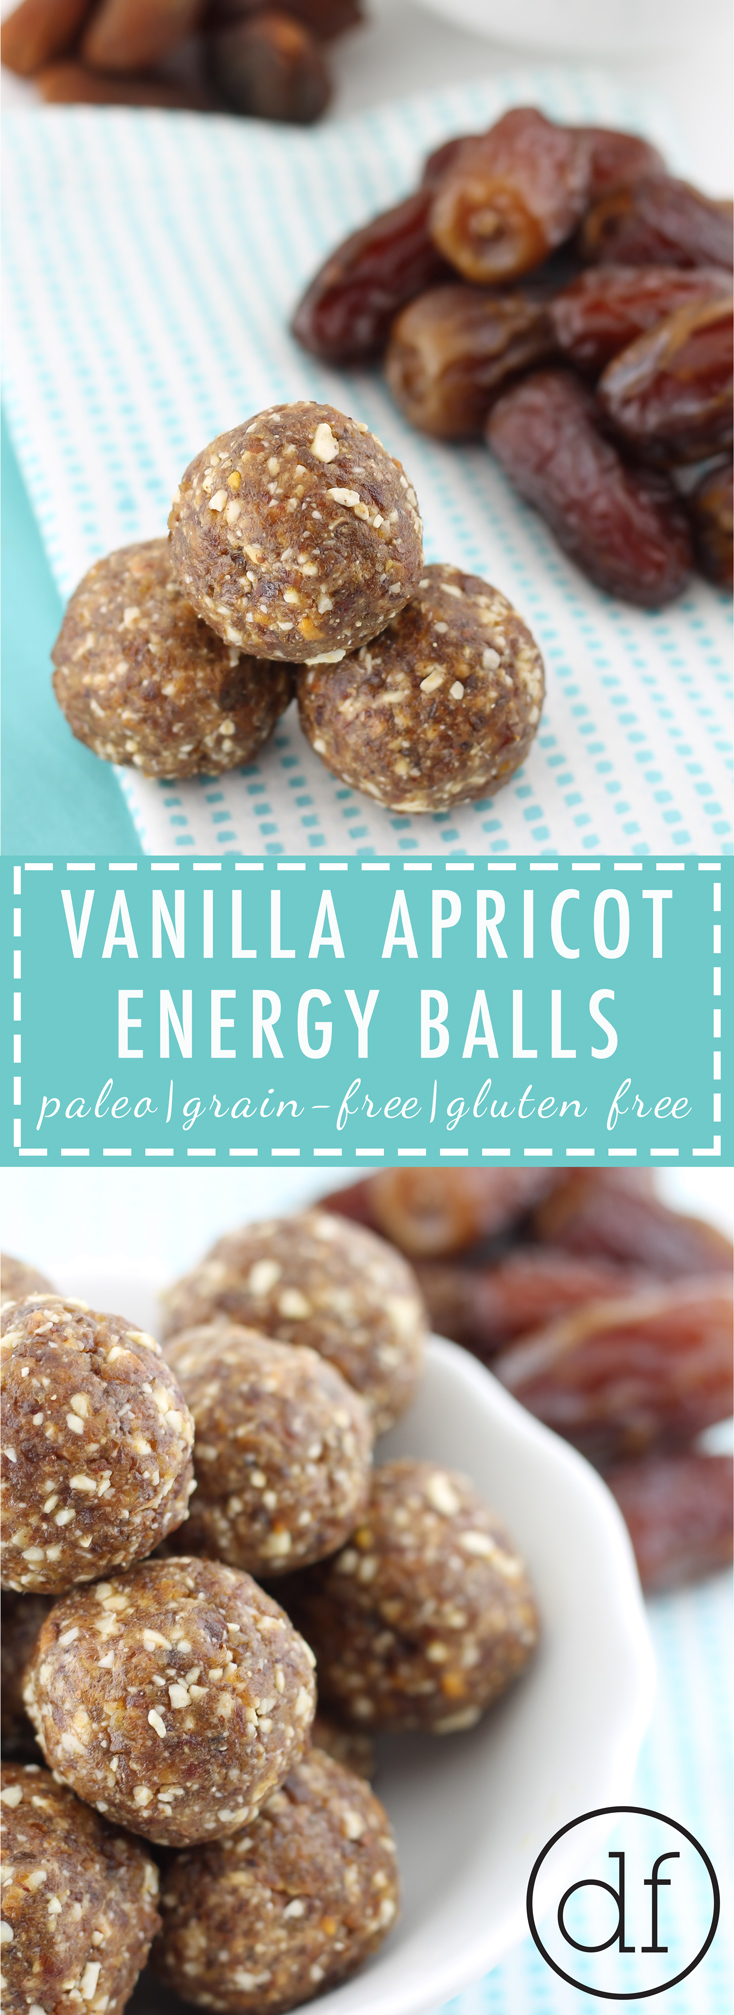 Energy Balls, Paleo, Grain Free. Whole30, Gluten Free, Healthy, Healthy Snacks, Healthy Food, Real Food, Recipes, Primal, Delicious, Easy, Simple, Low Ingredient, Low Sugar,